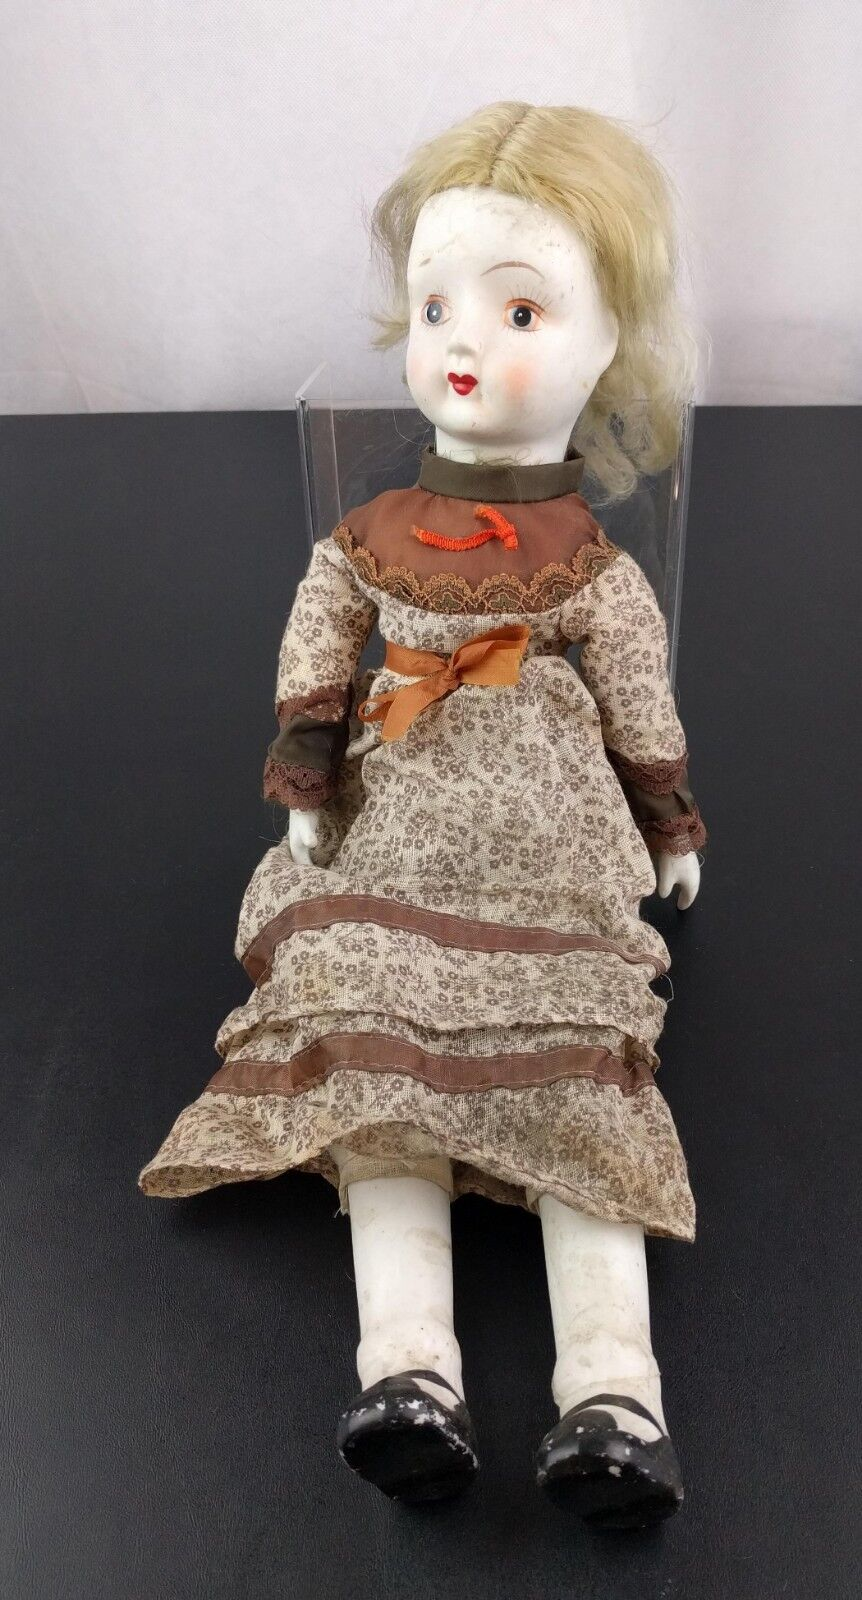 Antique Paranormal Creepy Haunted Looking Baby Doll Porcelain Spirit Scary Prop